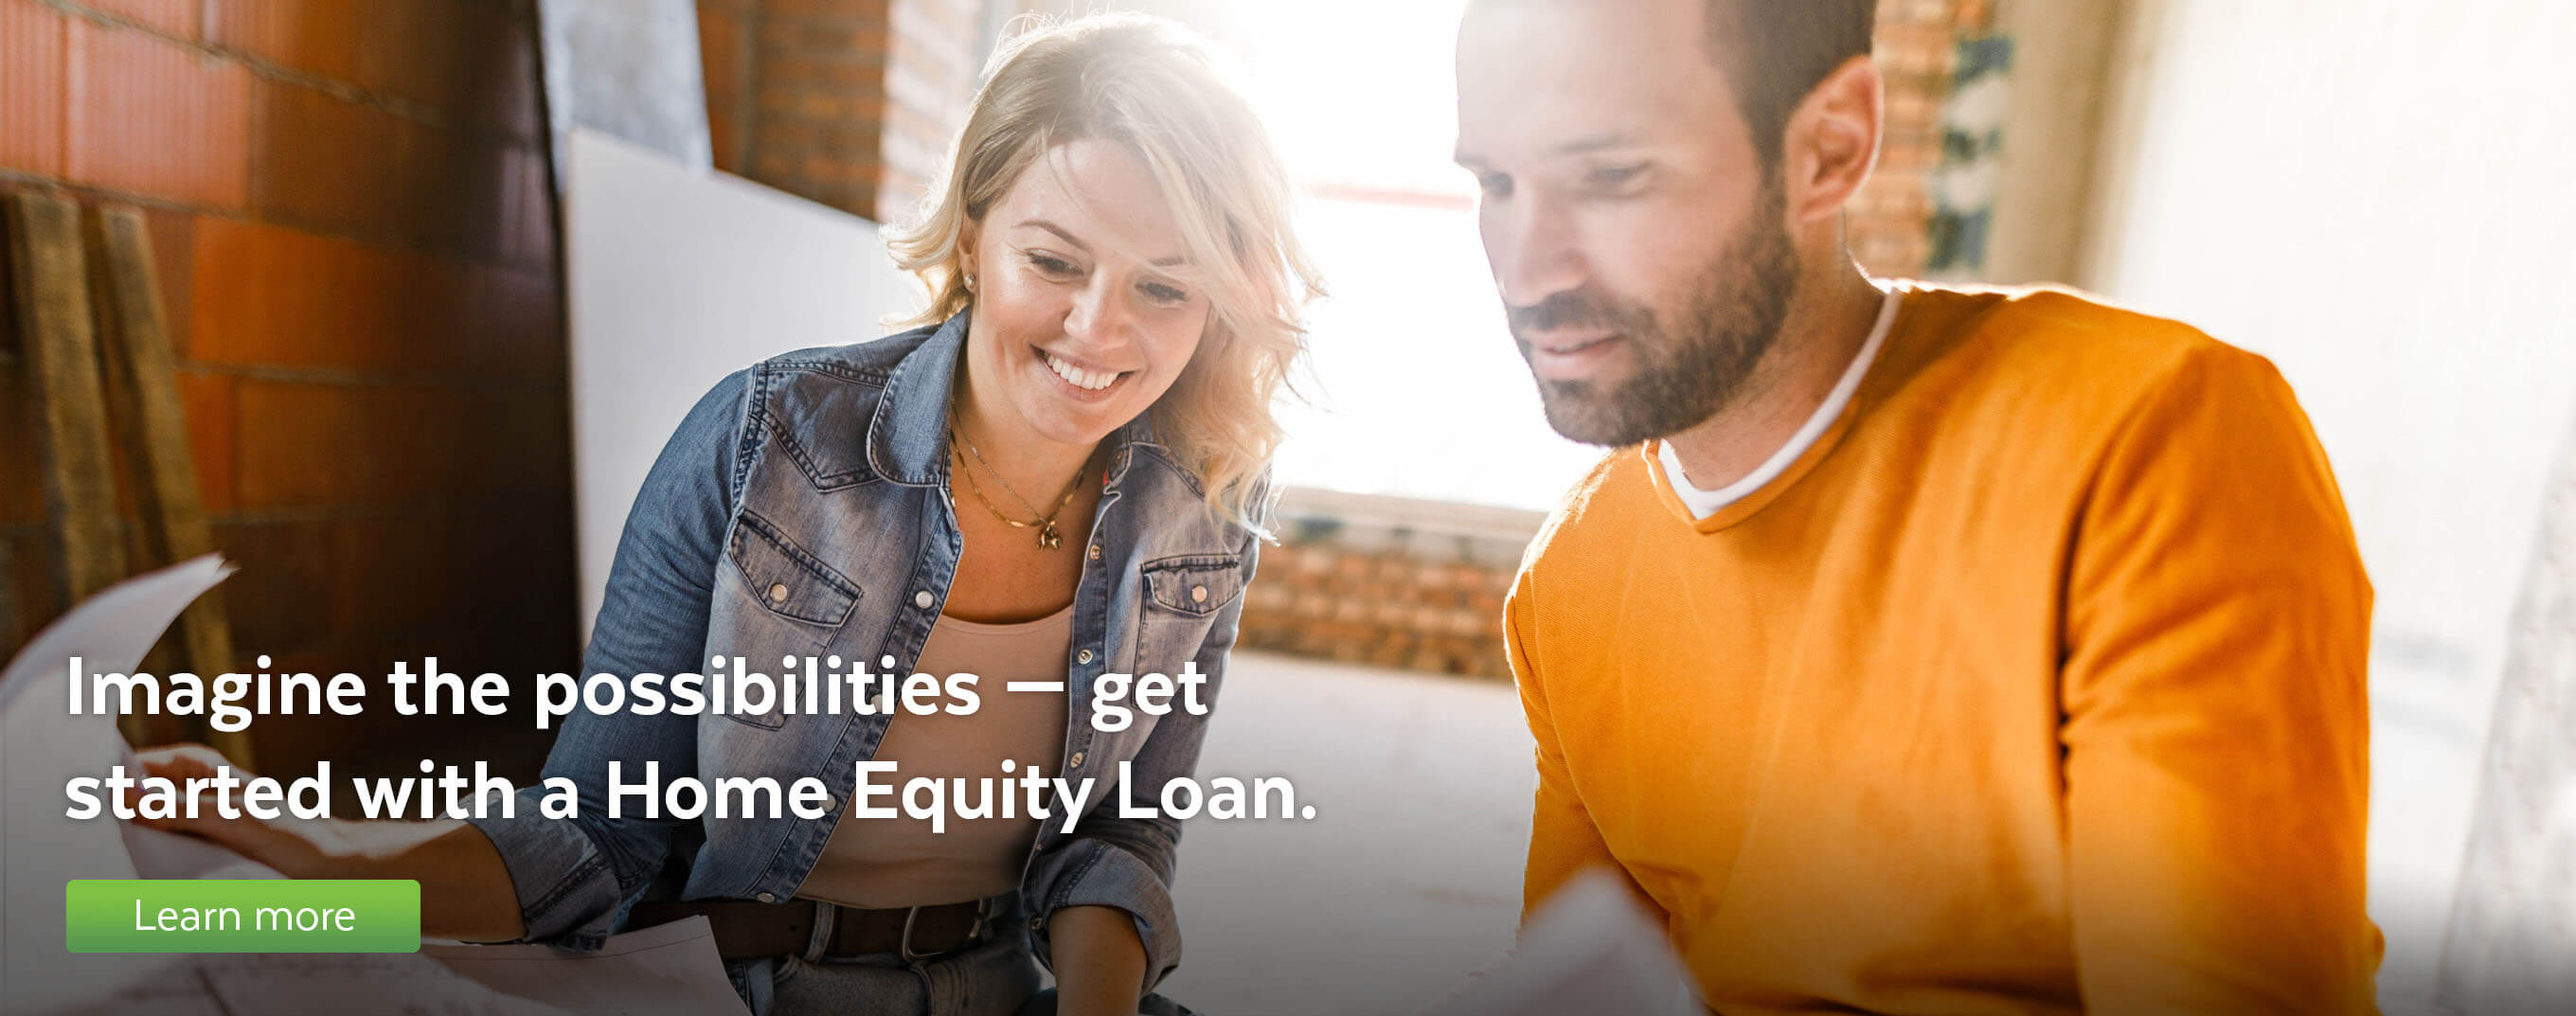 Imagine the possibilities — get started with a Home Equity Loan.